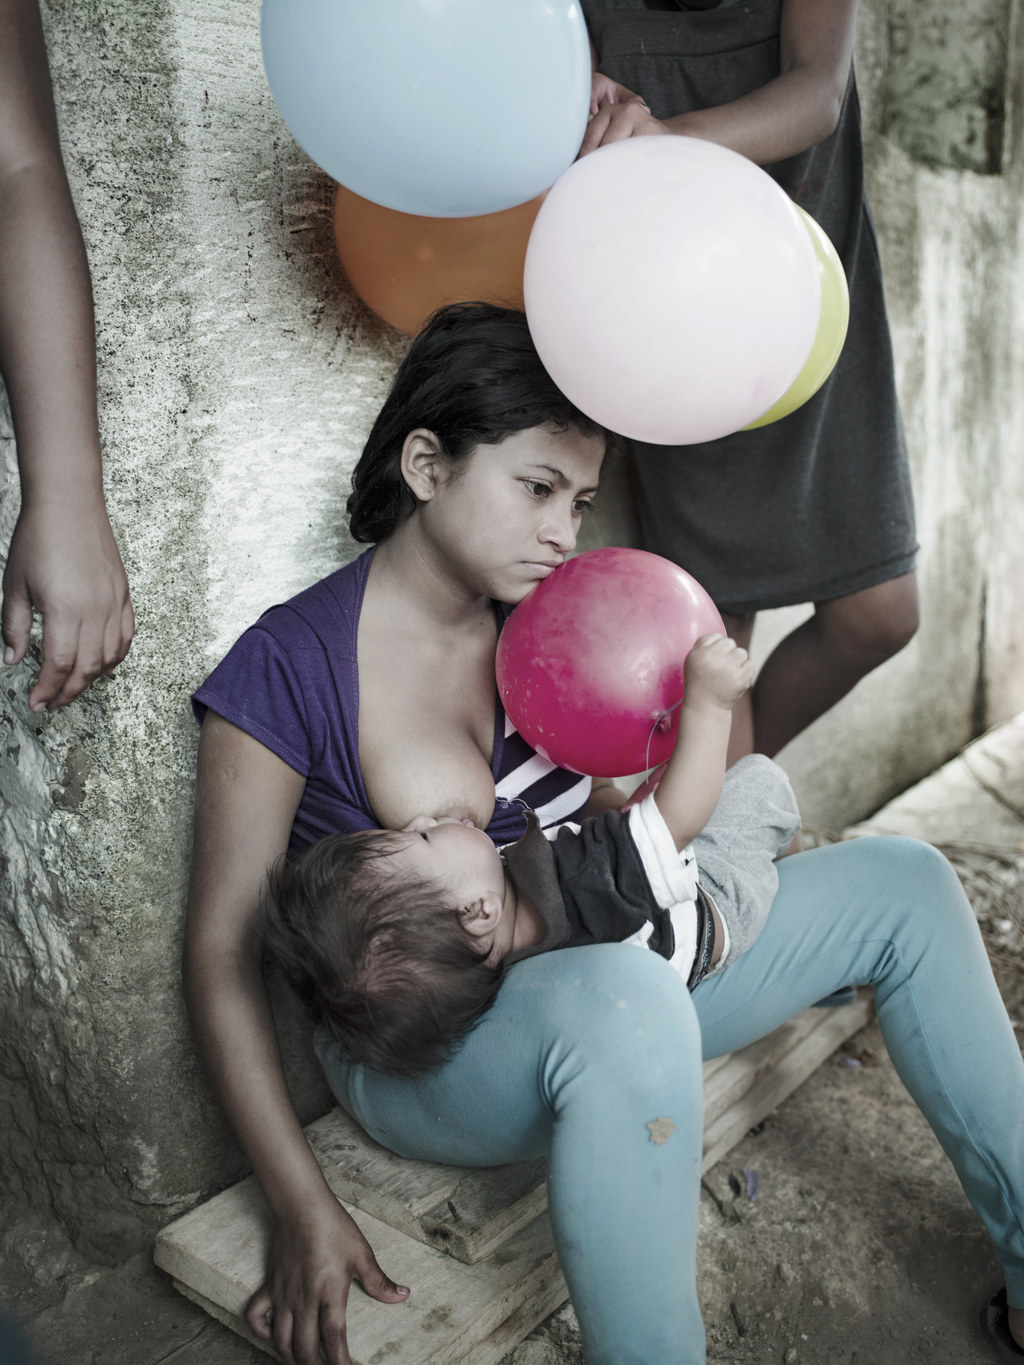 Raped, Pregnant Girls Are The Focus Of This Searing Photo Project